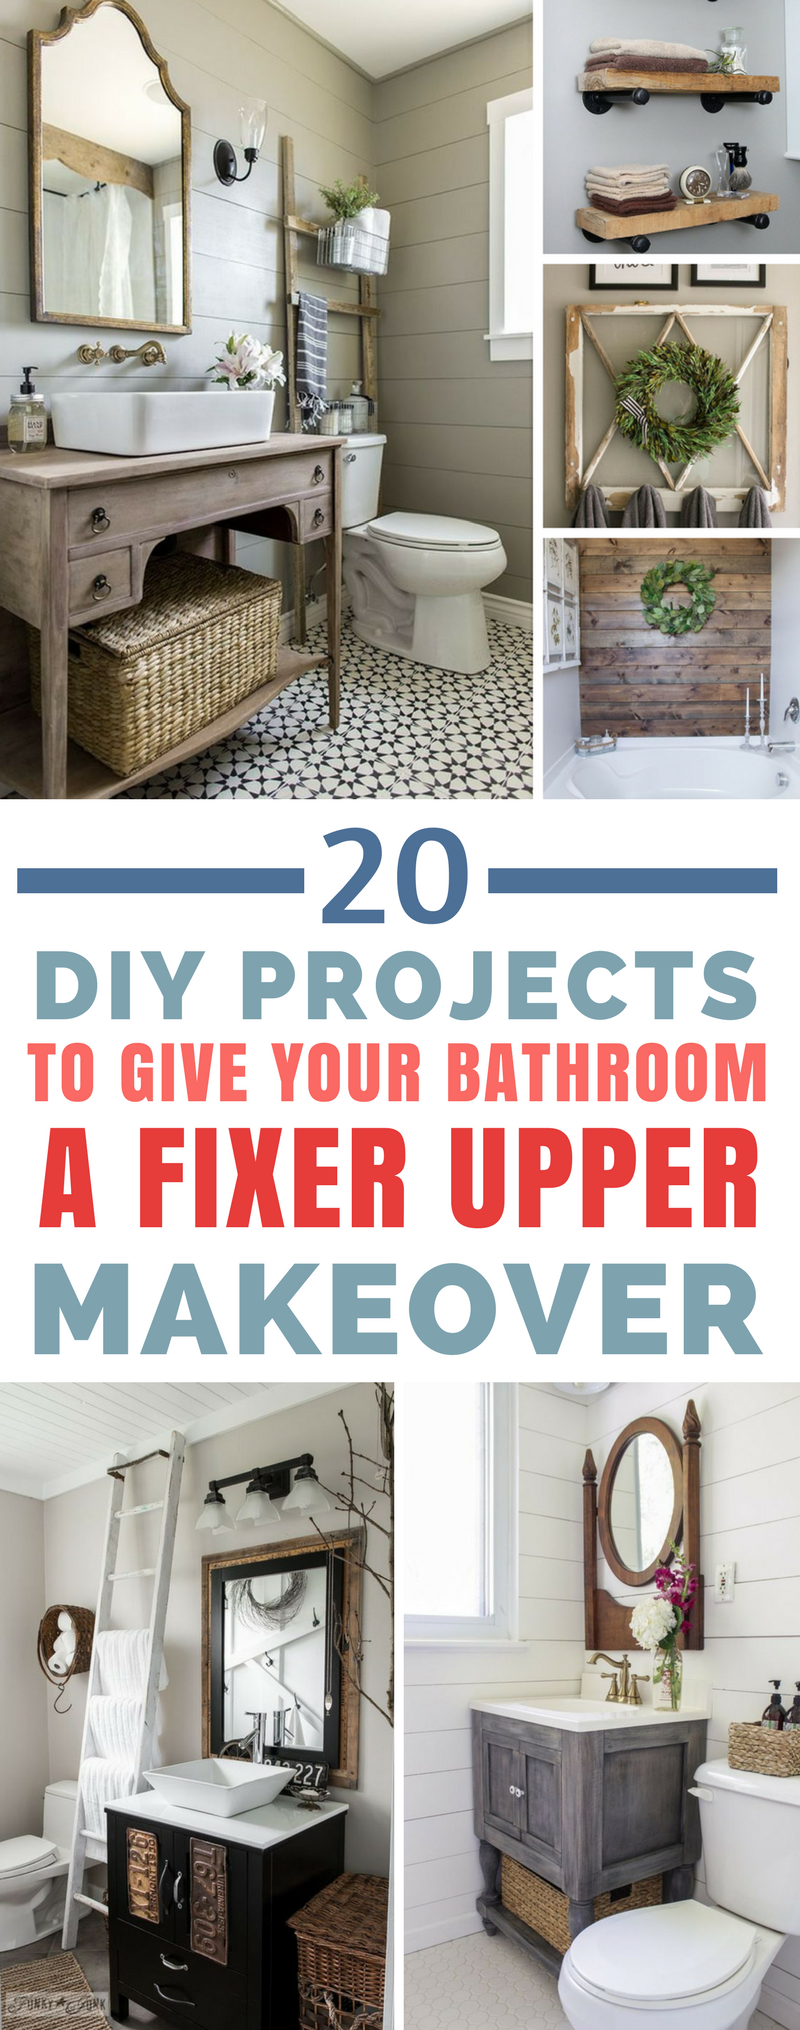 20 Fabulous Farmhouse DIY Projects to Makeover Your Bathroom Fixer Upper Style 20 Fabulous Farmhouse DIY Projects to Makeover Your Bathroom Fixer Upper Style A Cultivated...